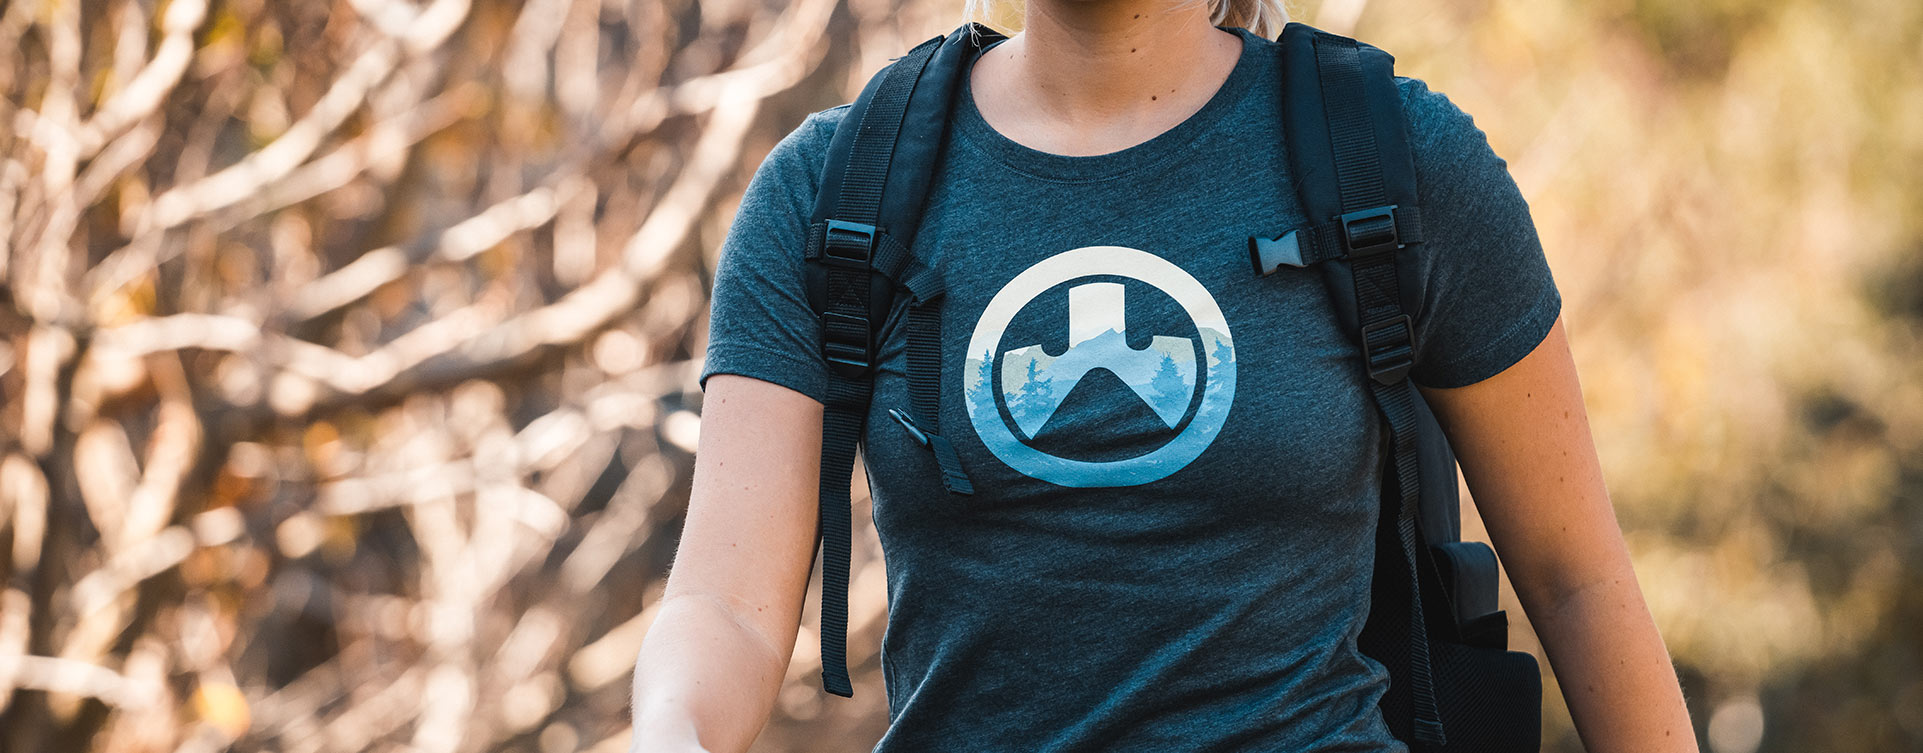 Magpul Women's Cascade Icon Logo CVC T-Shirt on women hiking with backpack outdoors